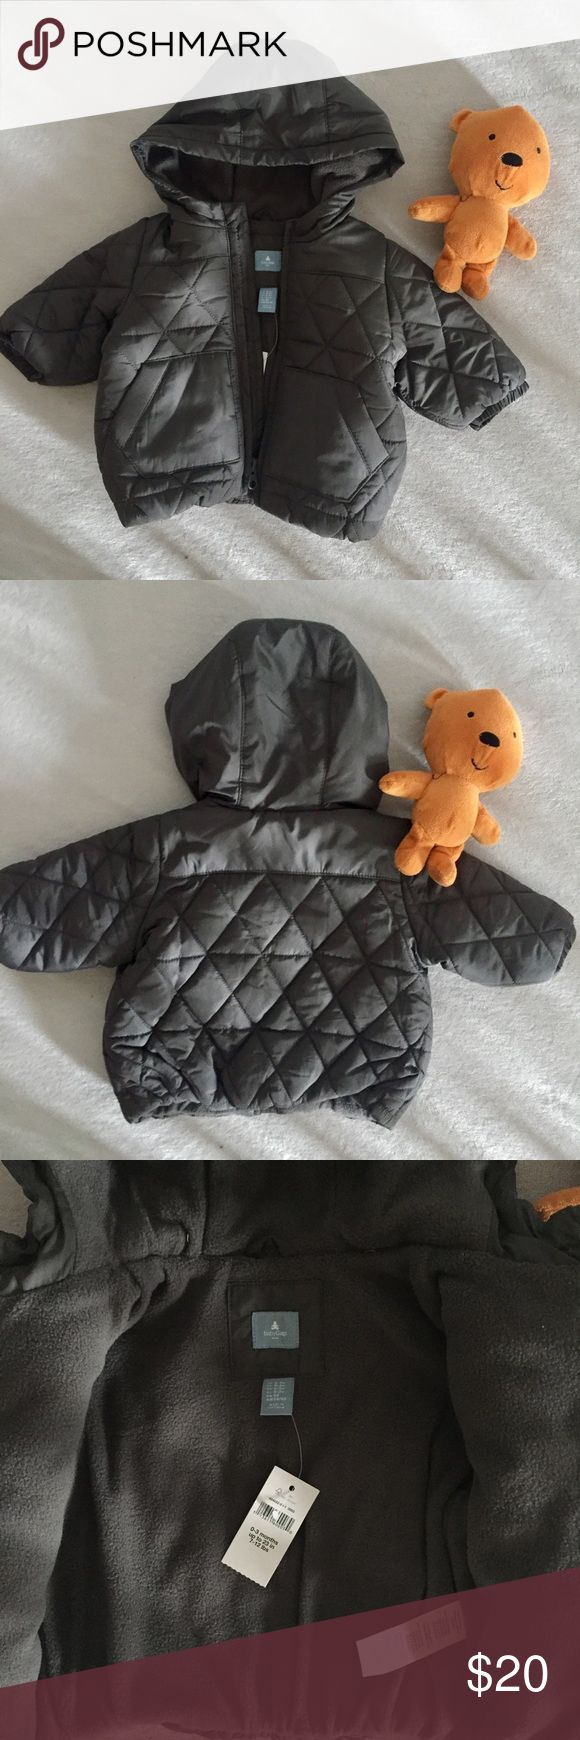 Baby Boy Winter Coat🐻 BRAND NEW.  Stylish baby boy winter coat , warm and easy to wear.  Light weight with felt lining.  Quilted design with plastic zipper. Baby Gap Jackets & Coats Puffers